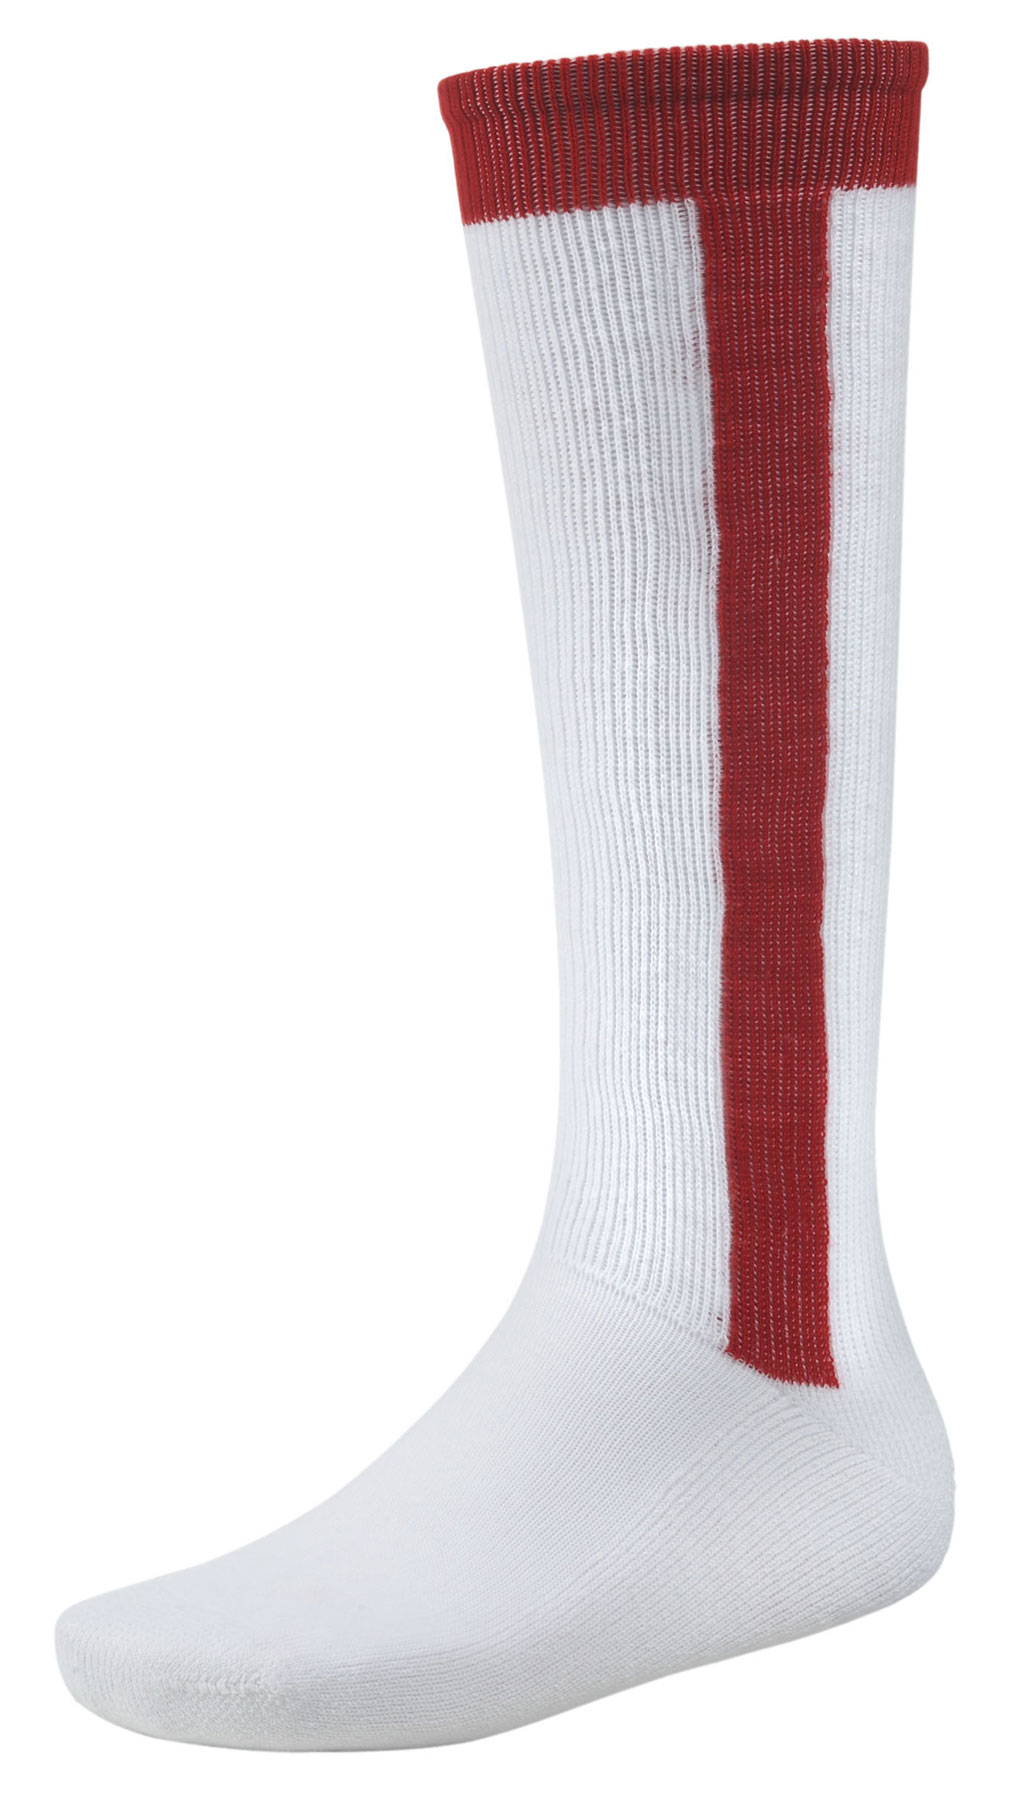 Youth Performance 2-in-1 Baseball Socks